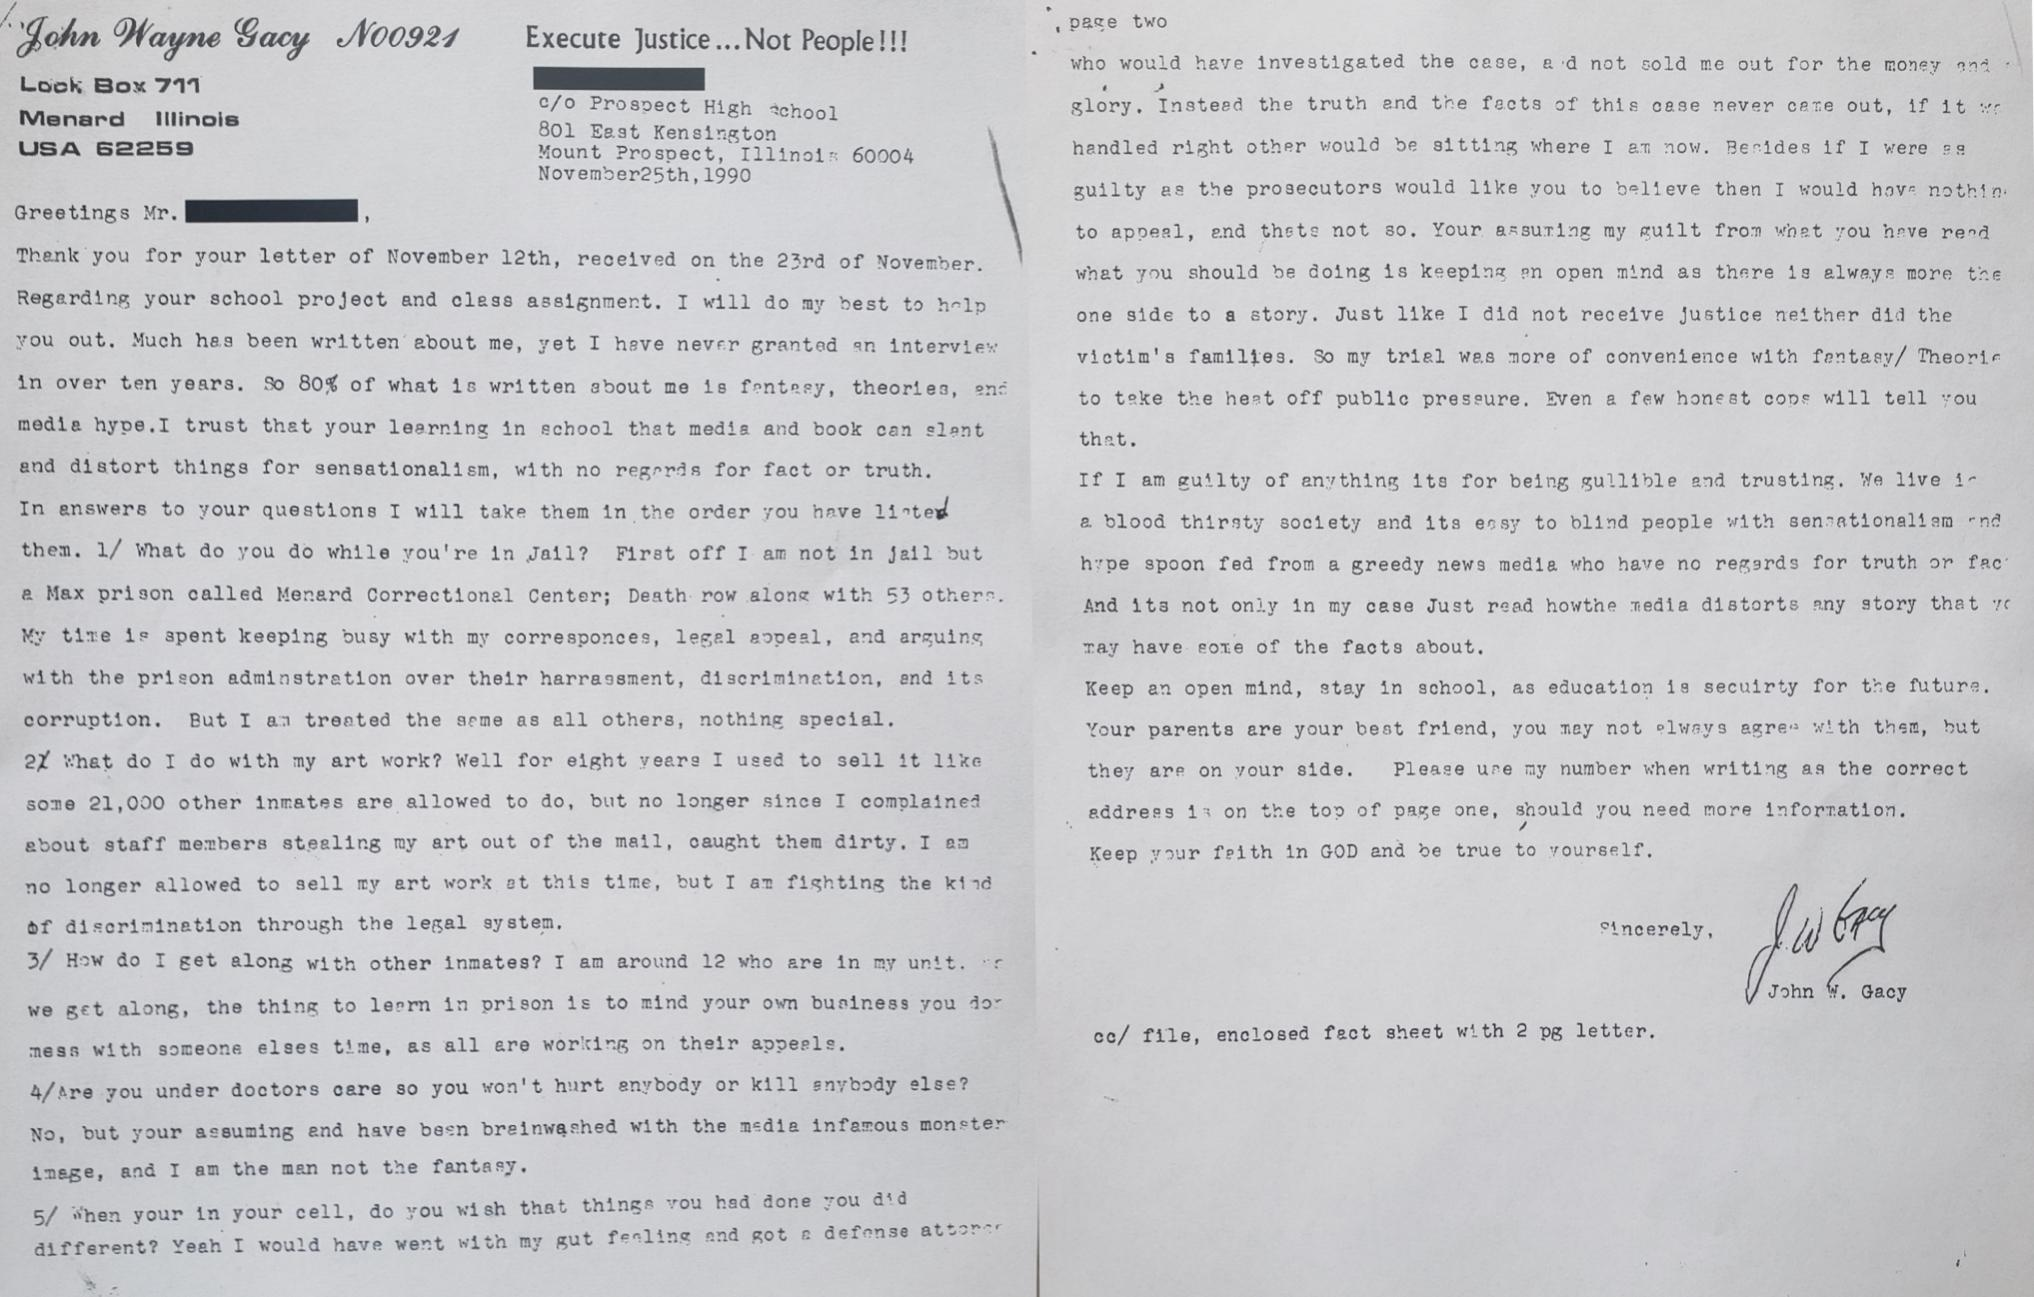 A teacher recently found a letter from John Wayne Gacy in